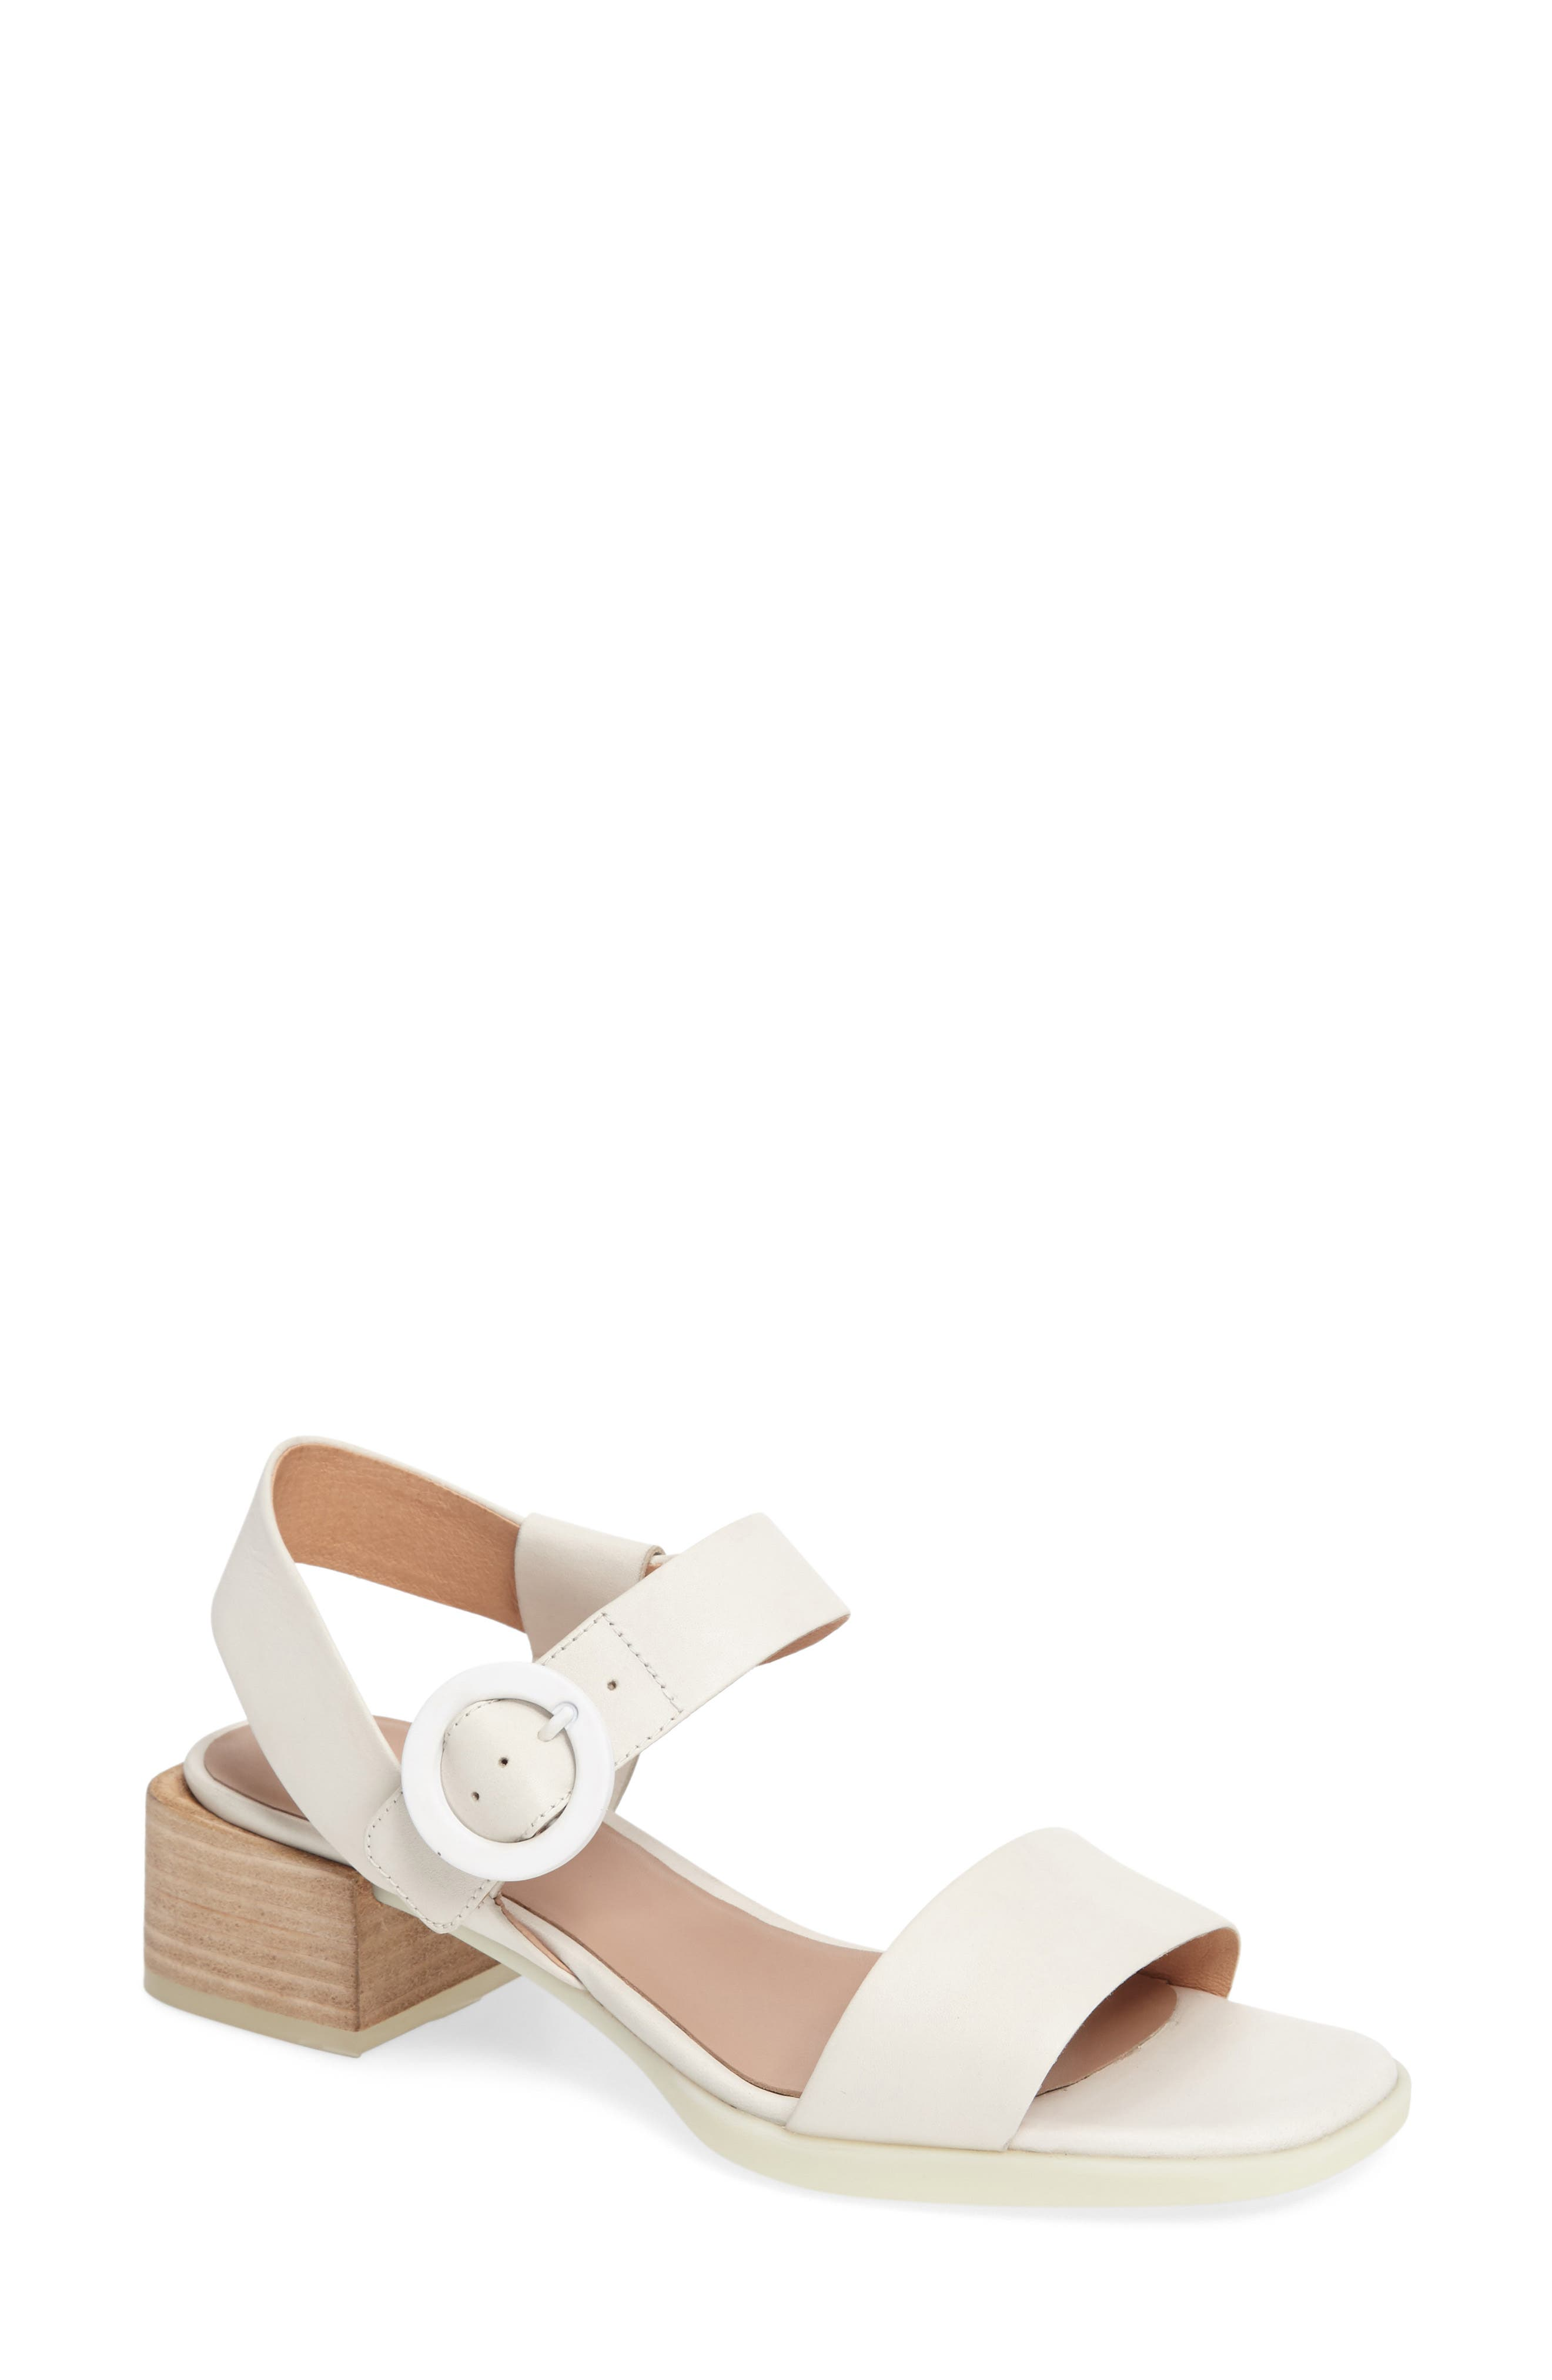 Alternate Image 1 Selected - Camper Kobo Buckle Strap Sandal (Women)